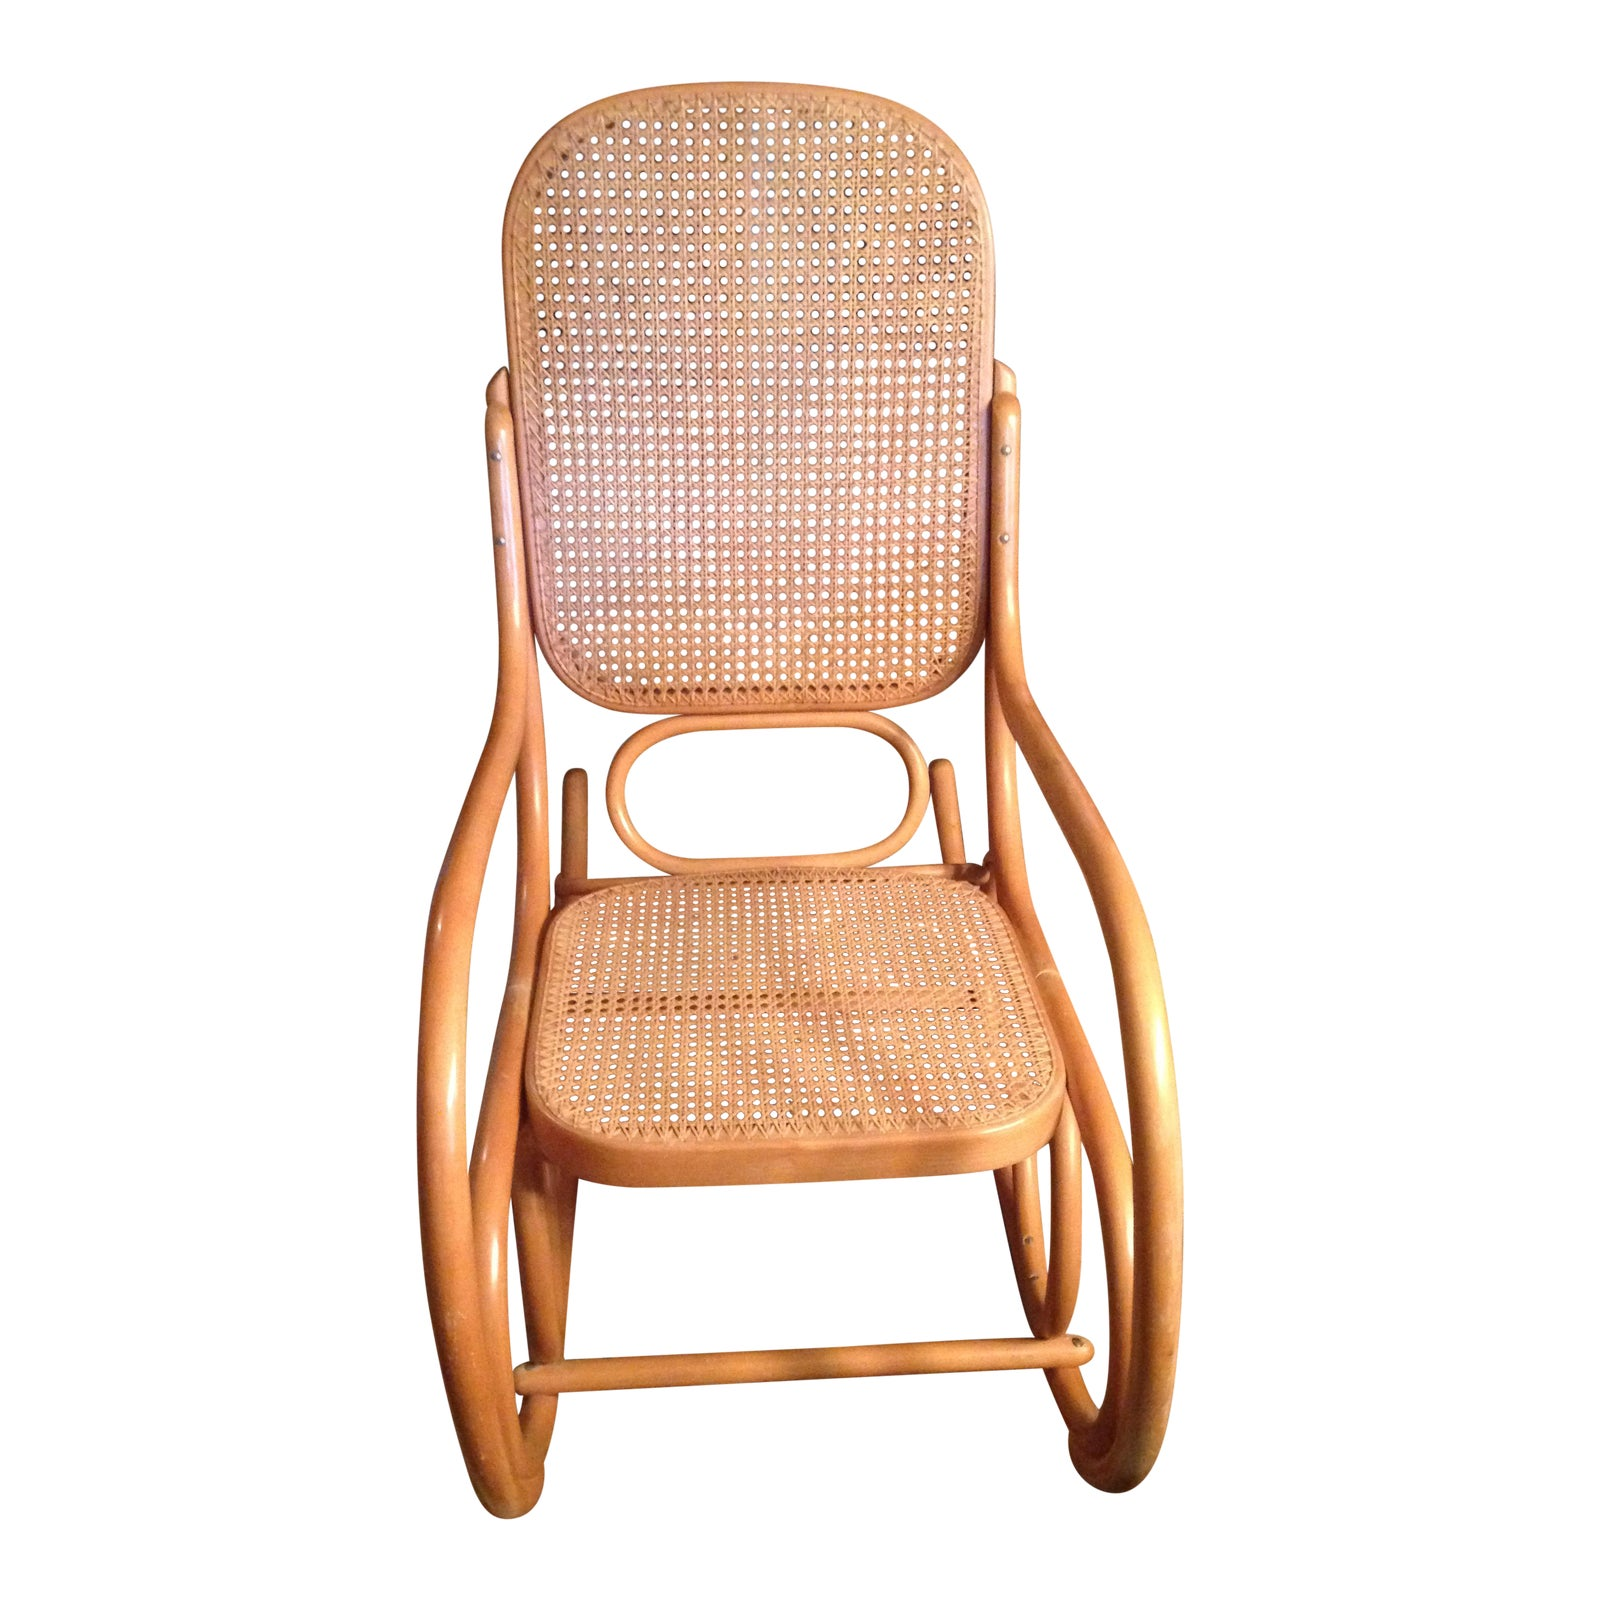 img abuelo co masaya teak wood chair nicaraguan handwoven solid of nicaragua manila mid customizable century copy pattern patterned products rocking